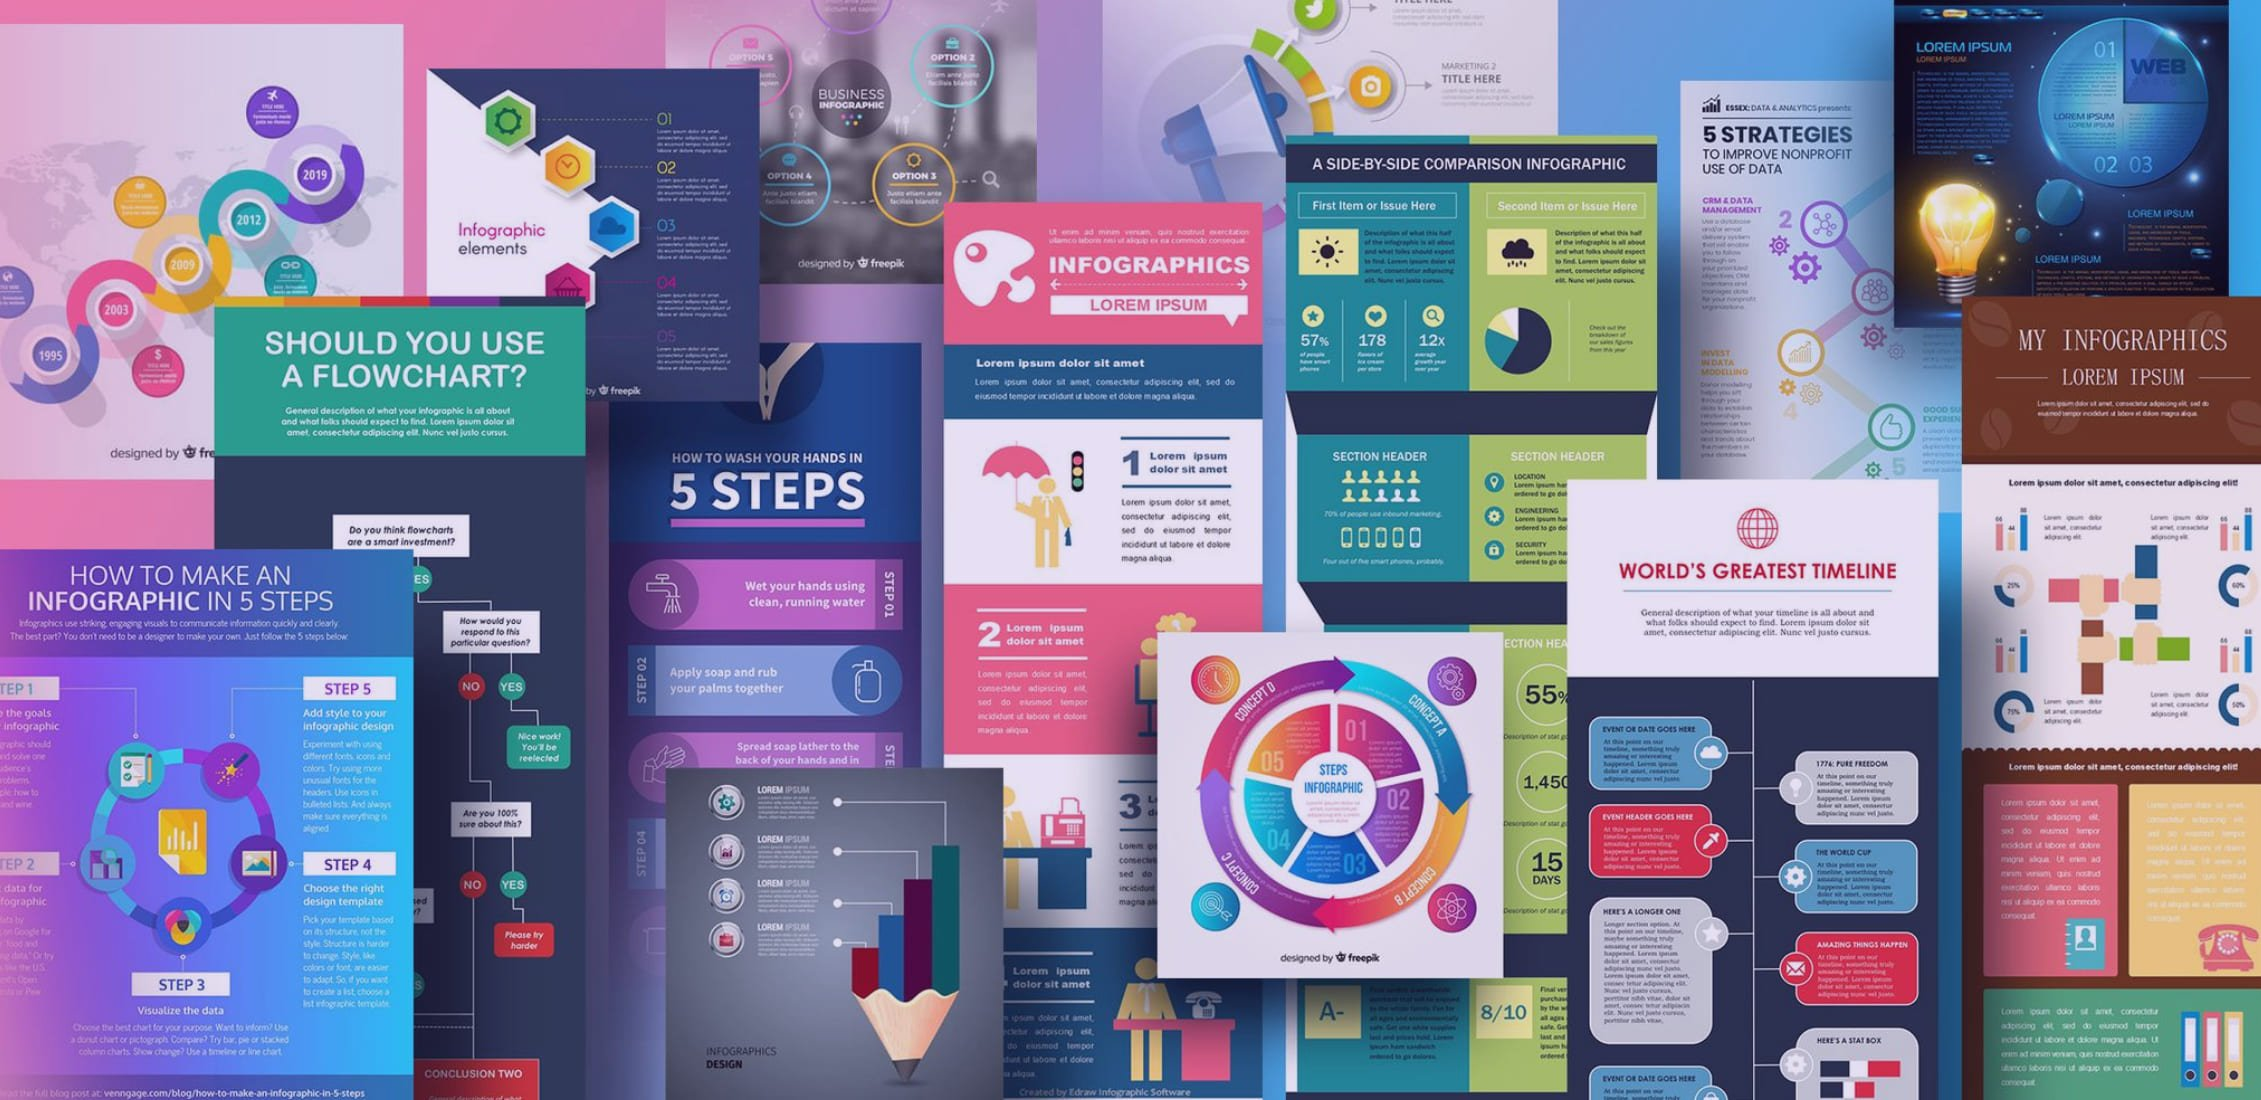 Examples of the best infographic templates.